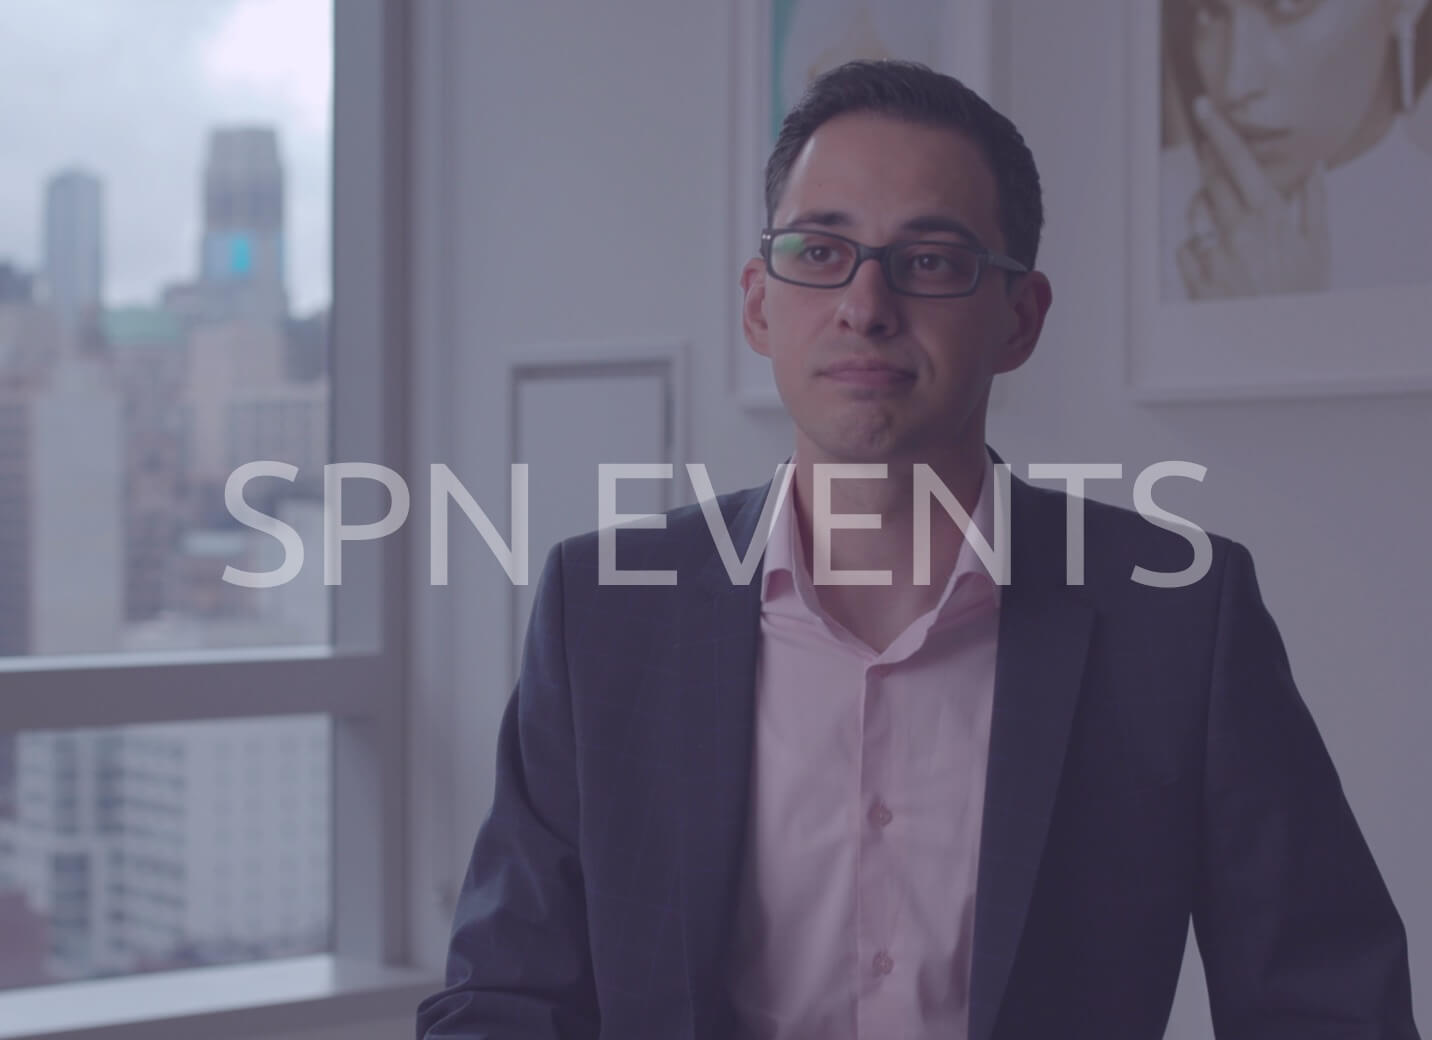 SPN EVENTS, which specializes in musical services for events, needed a reliable yet flexible payment solution to keep its artists happy.